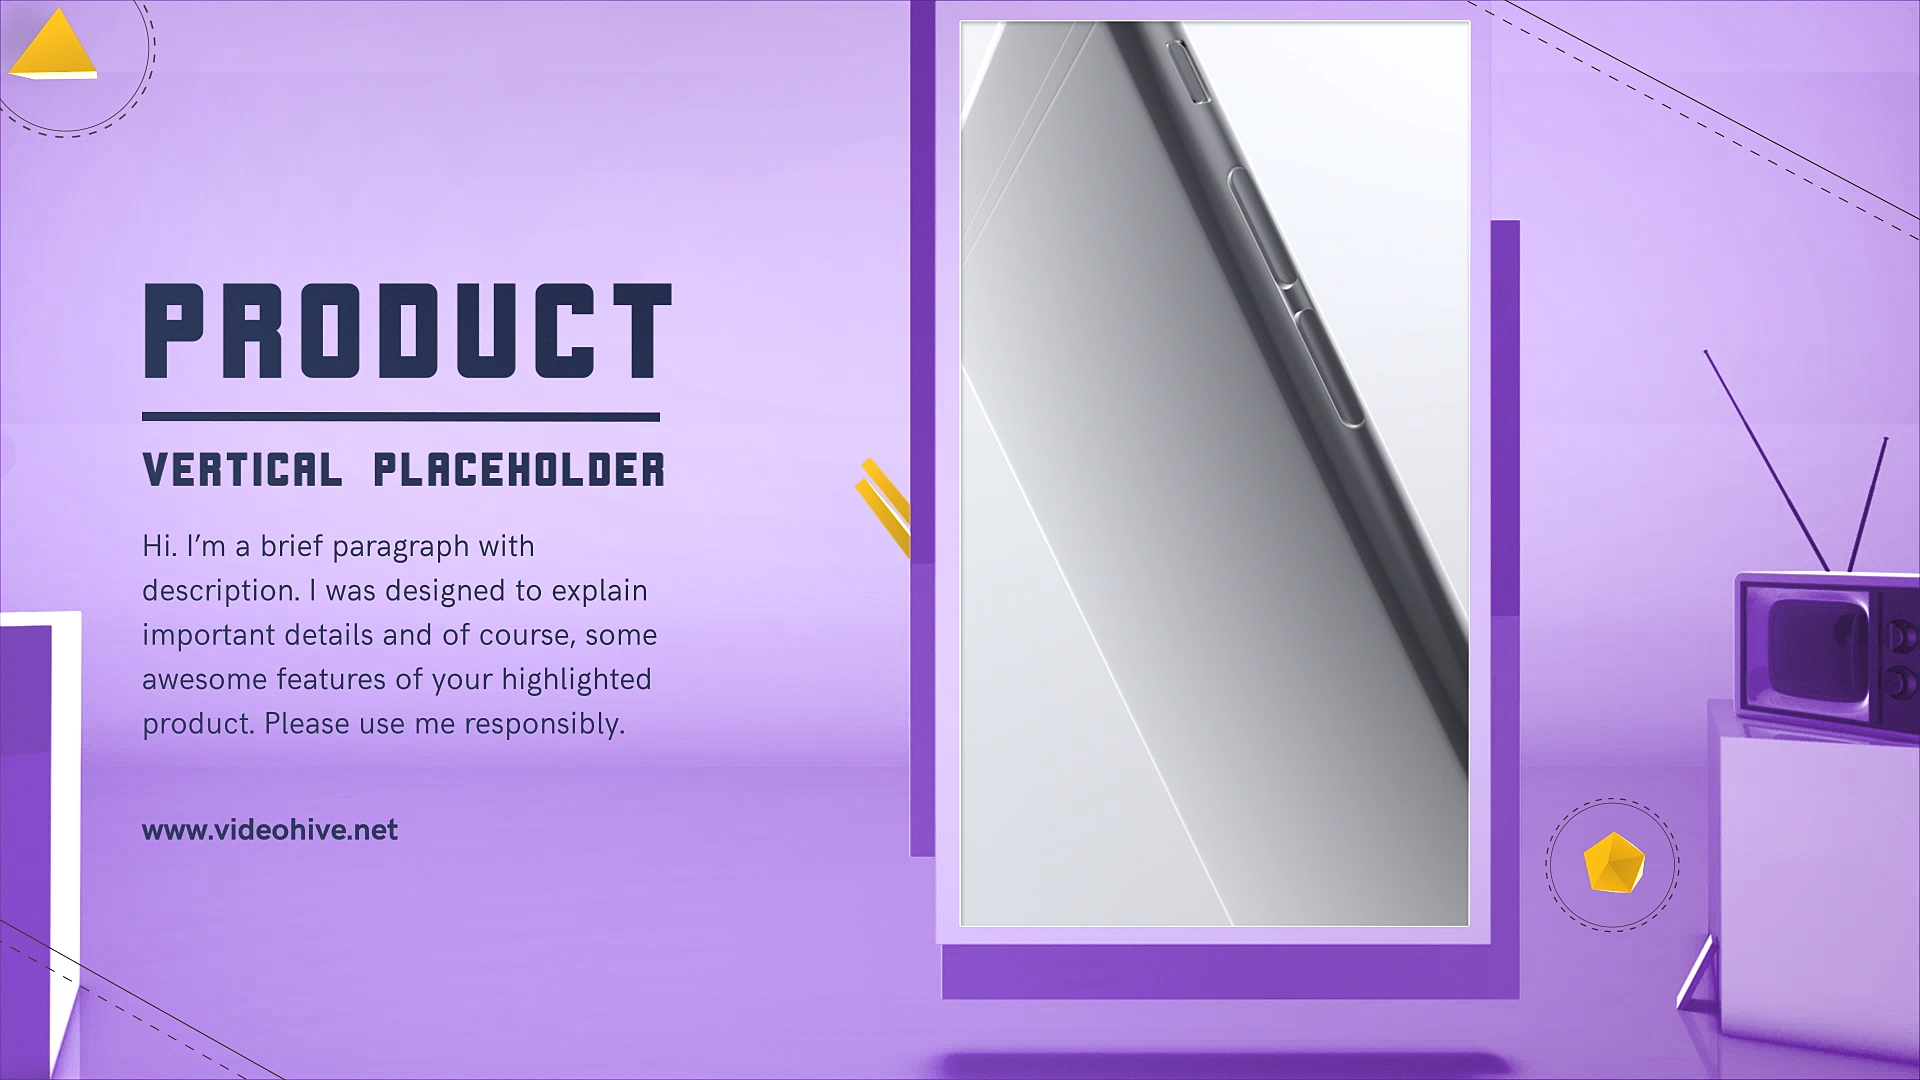 Digital_Product_Review_Pack_1080p_00555